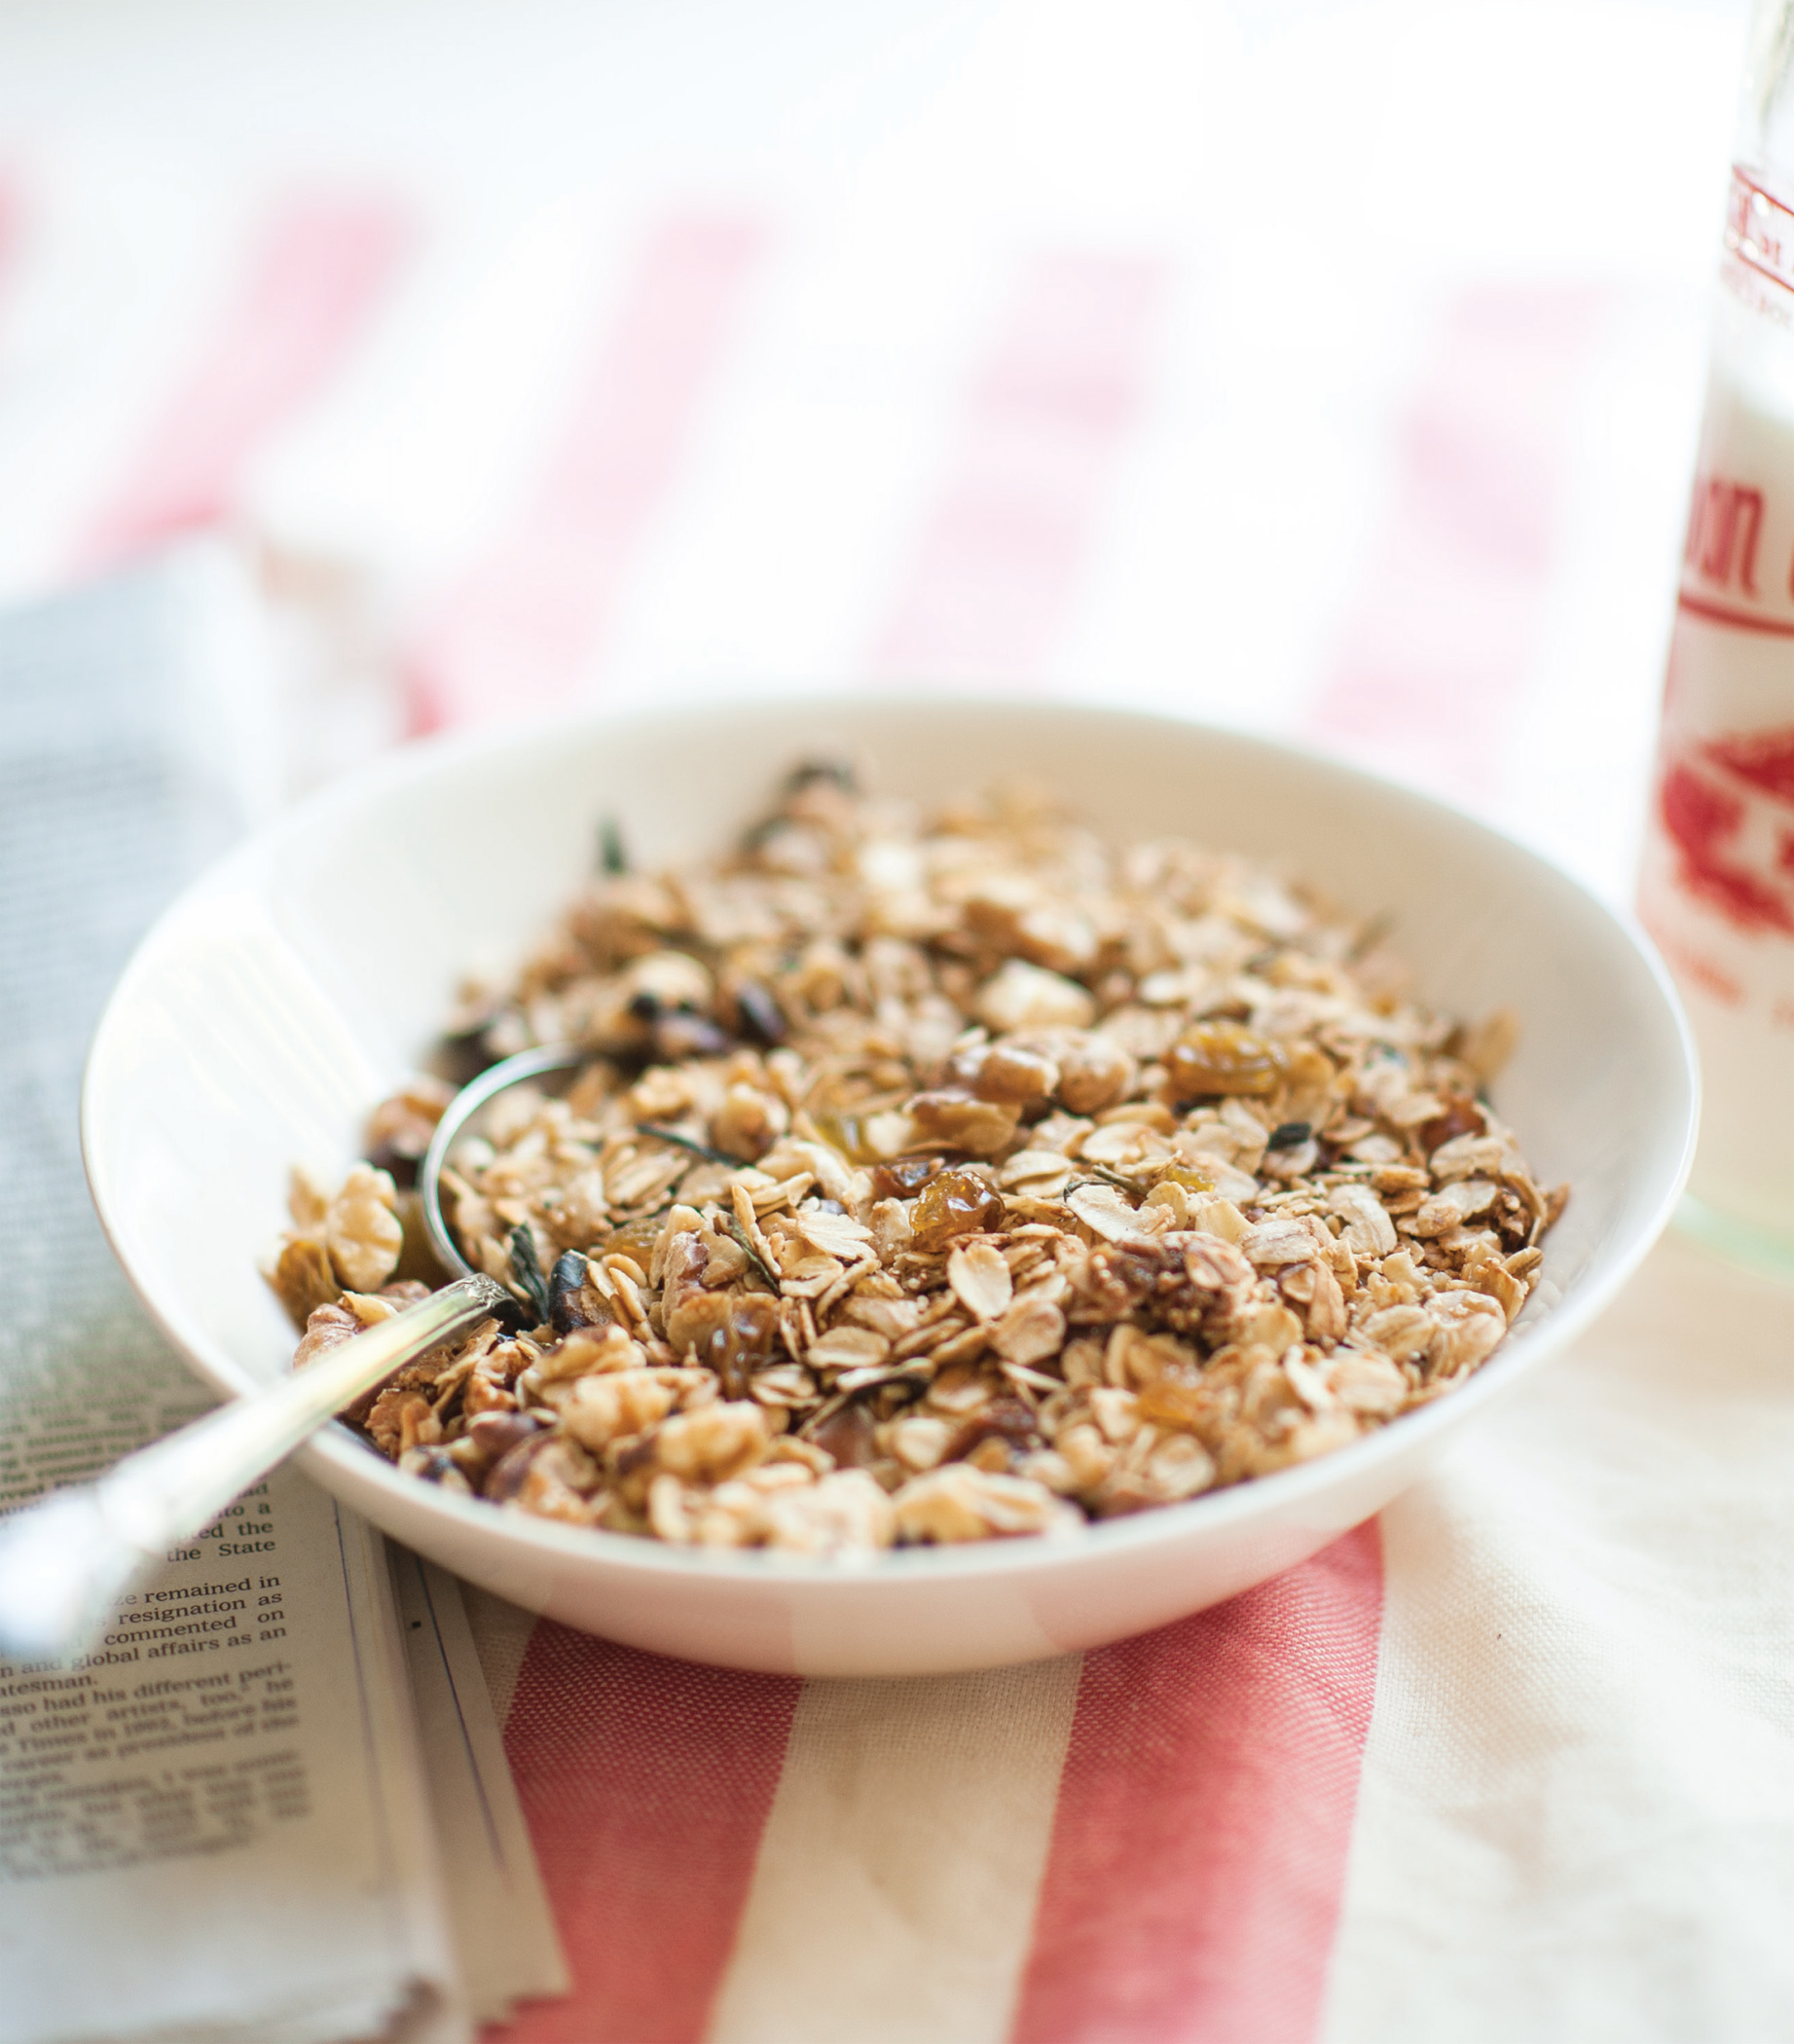 Green Tea Granola from Steeped by Annelies Zijderveld | gluten free adaptable.